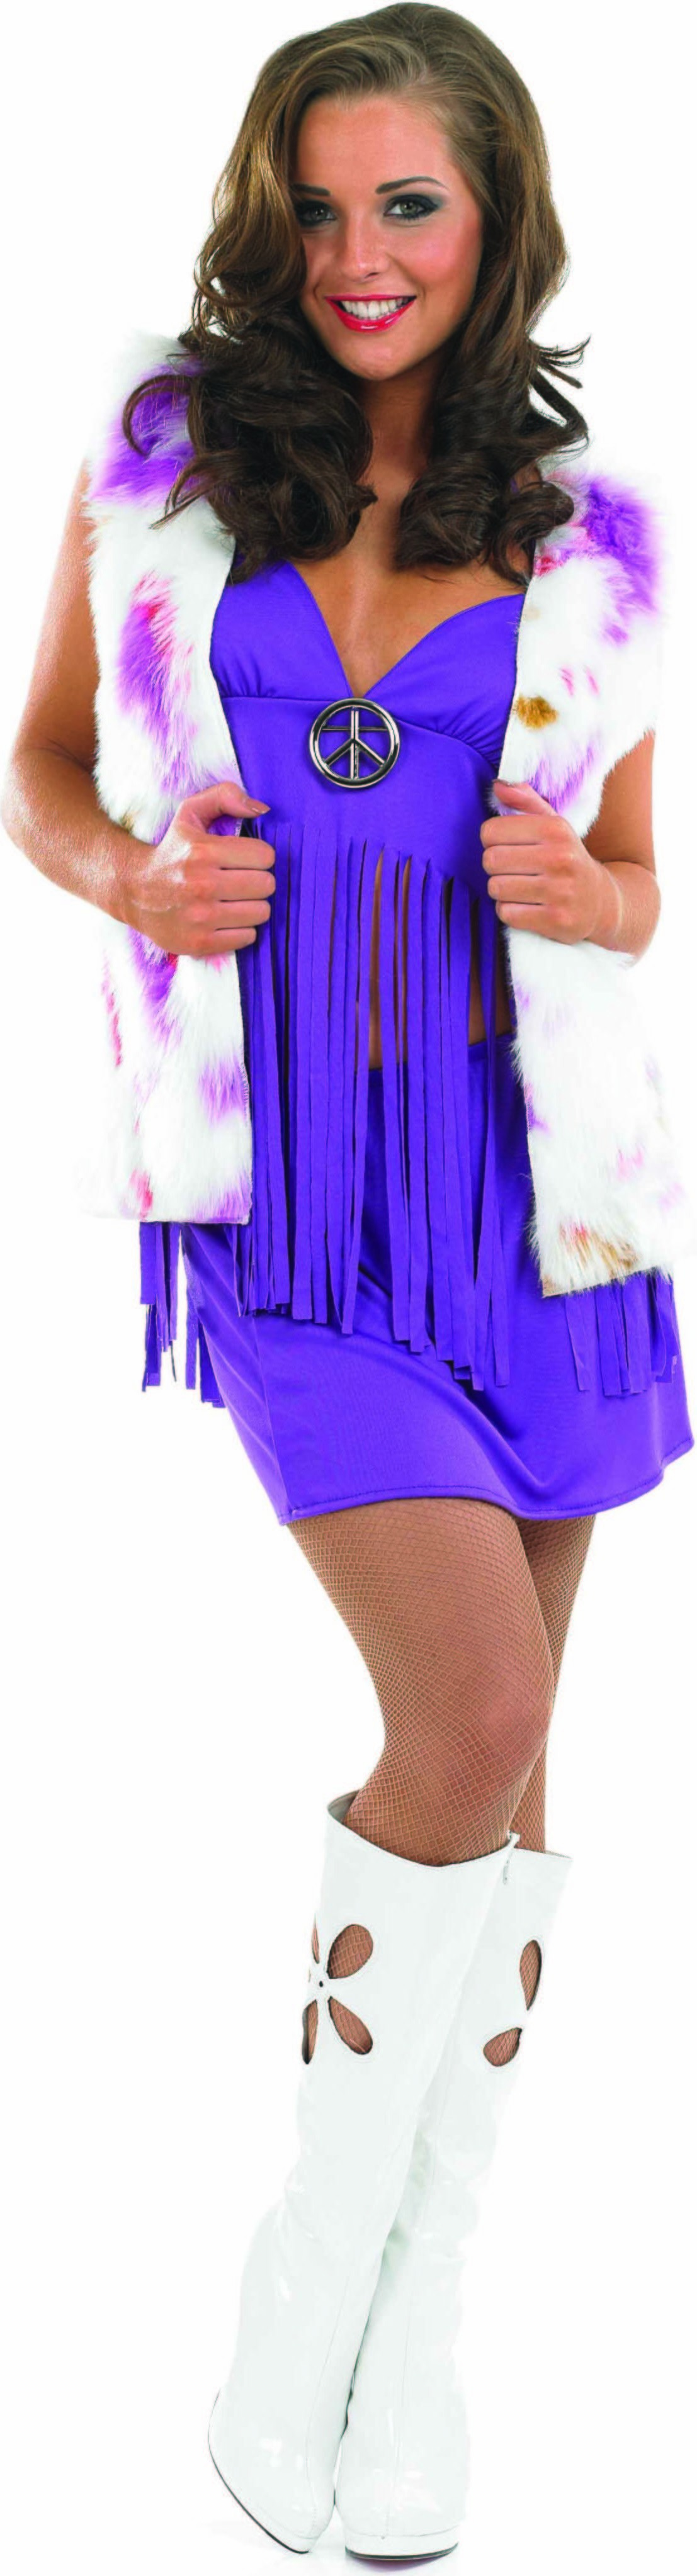 Ladies Hippie Chic Hippy Outfit - (Purple, White)